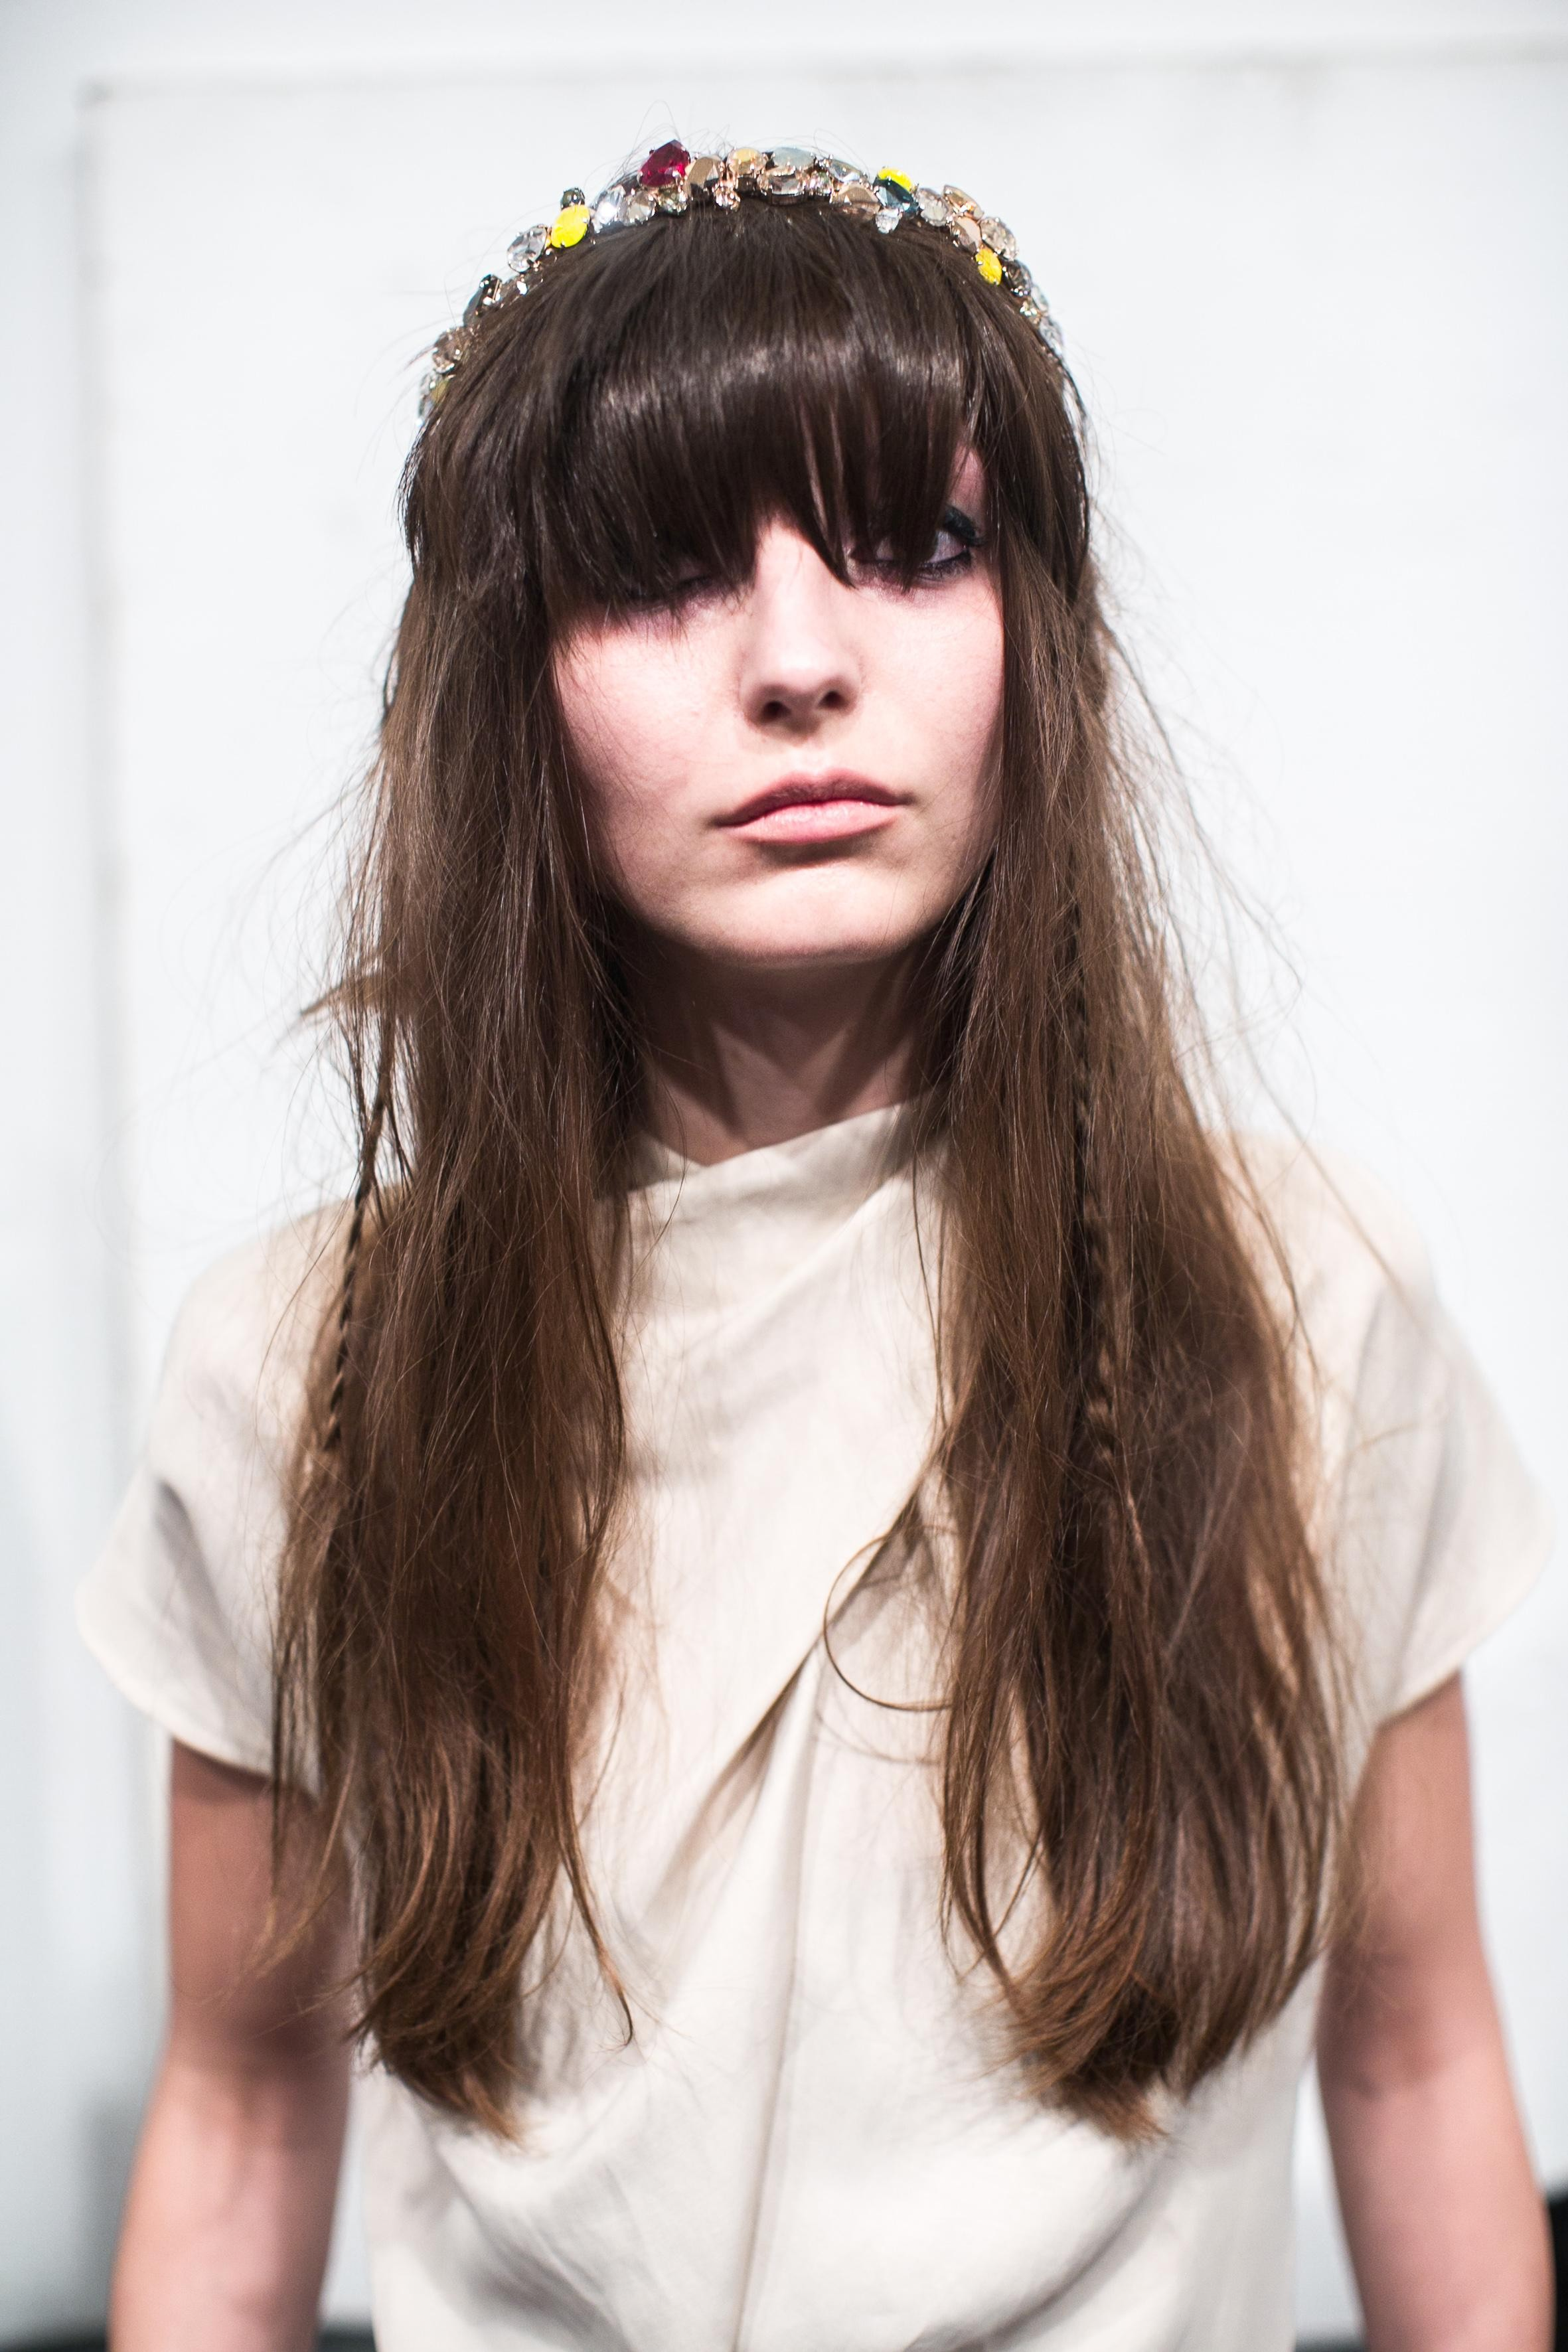 Inspirational Long Hair Style Portrait-Incredible Long Hair Styling Wall